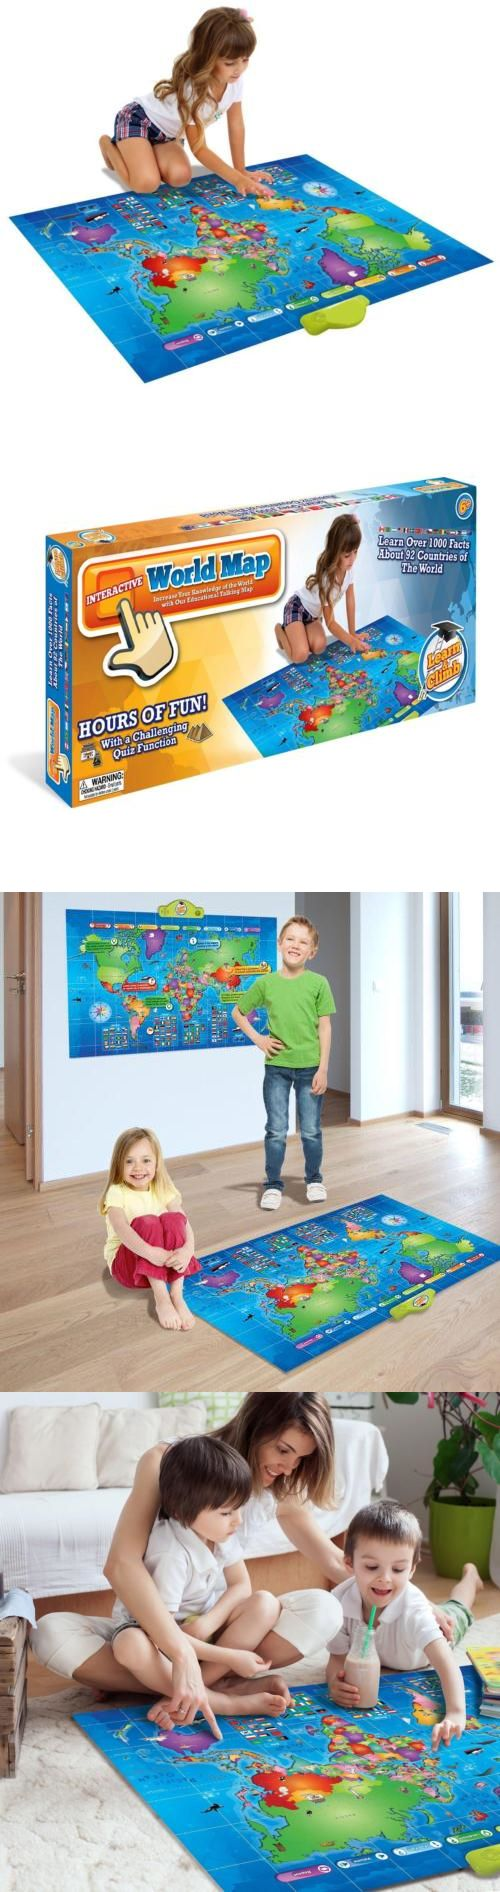 Geography and History 11733: Push-To-Talk Kids World Map - Learn Over 1000 Facts And Quizzes About 92... -> BUY IT NOW ONLY: $61.94 on eBay!